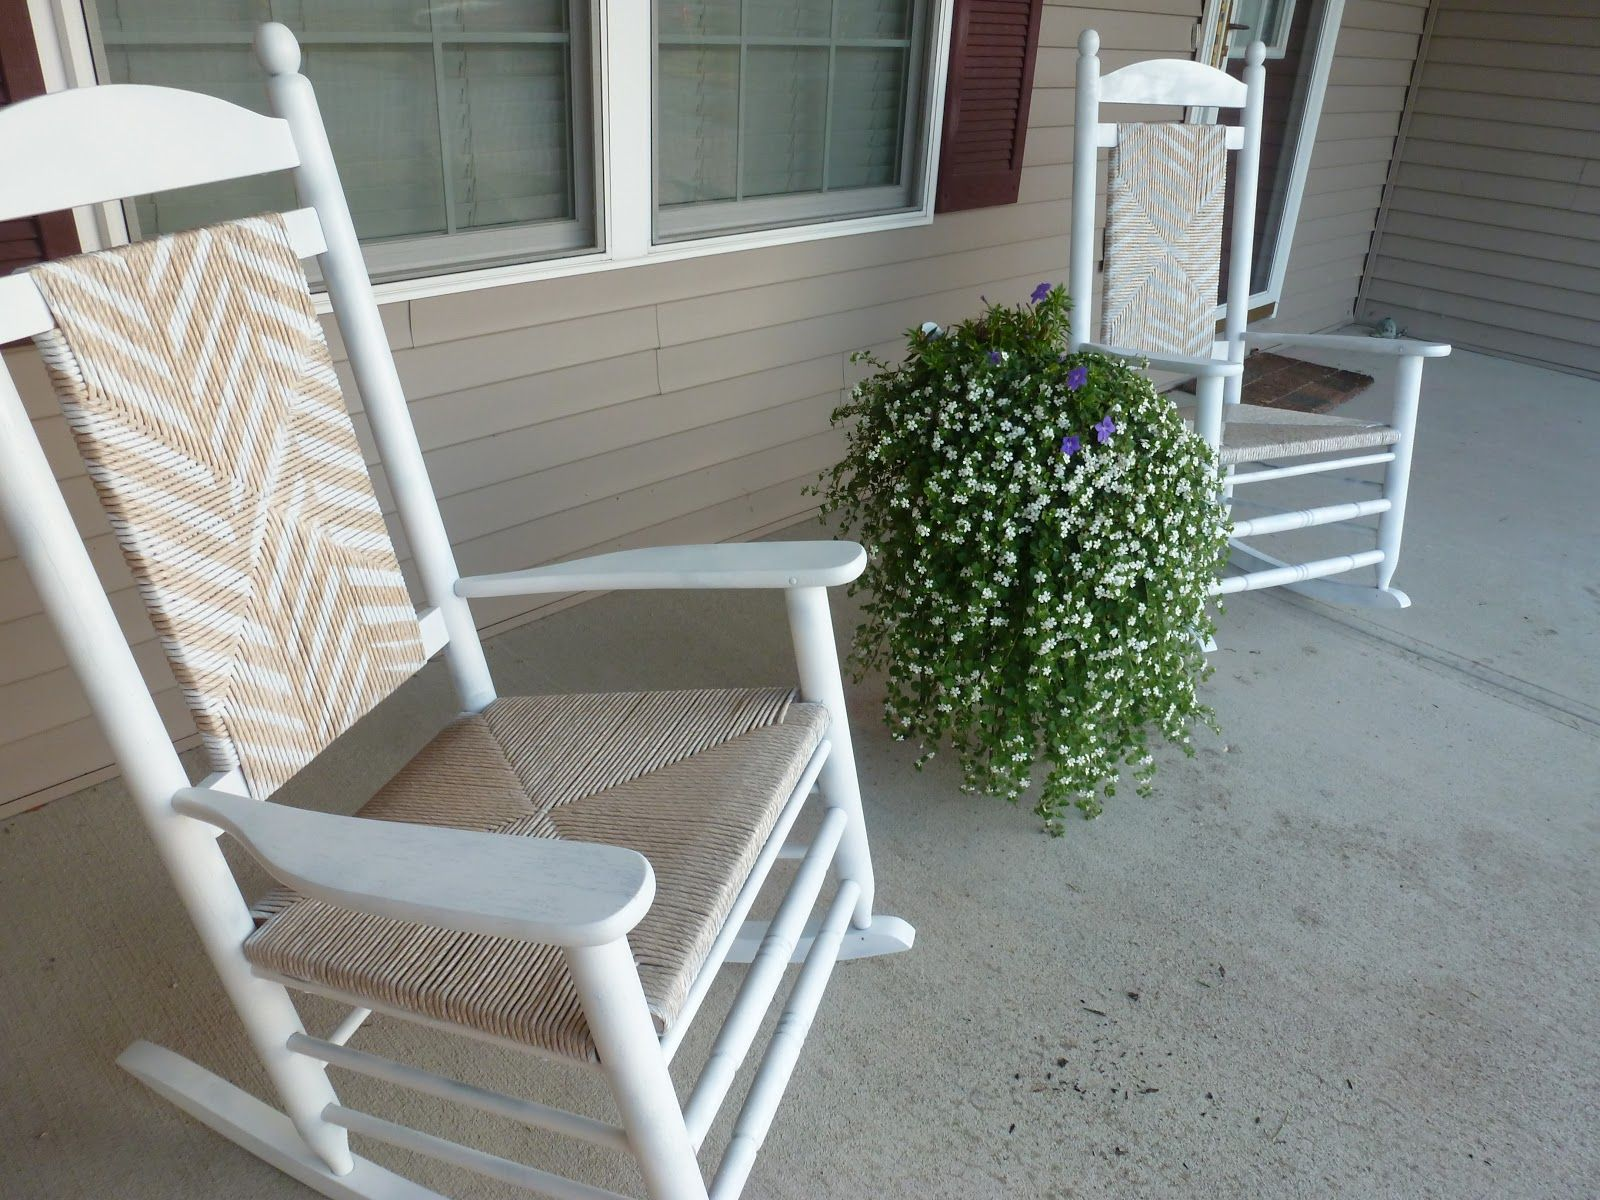 Cracker Barrel Rocking Chairs For Porch